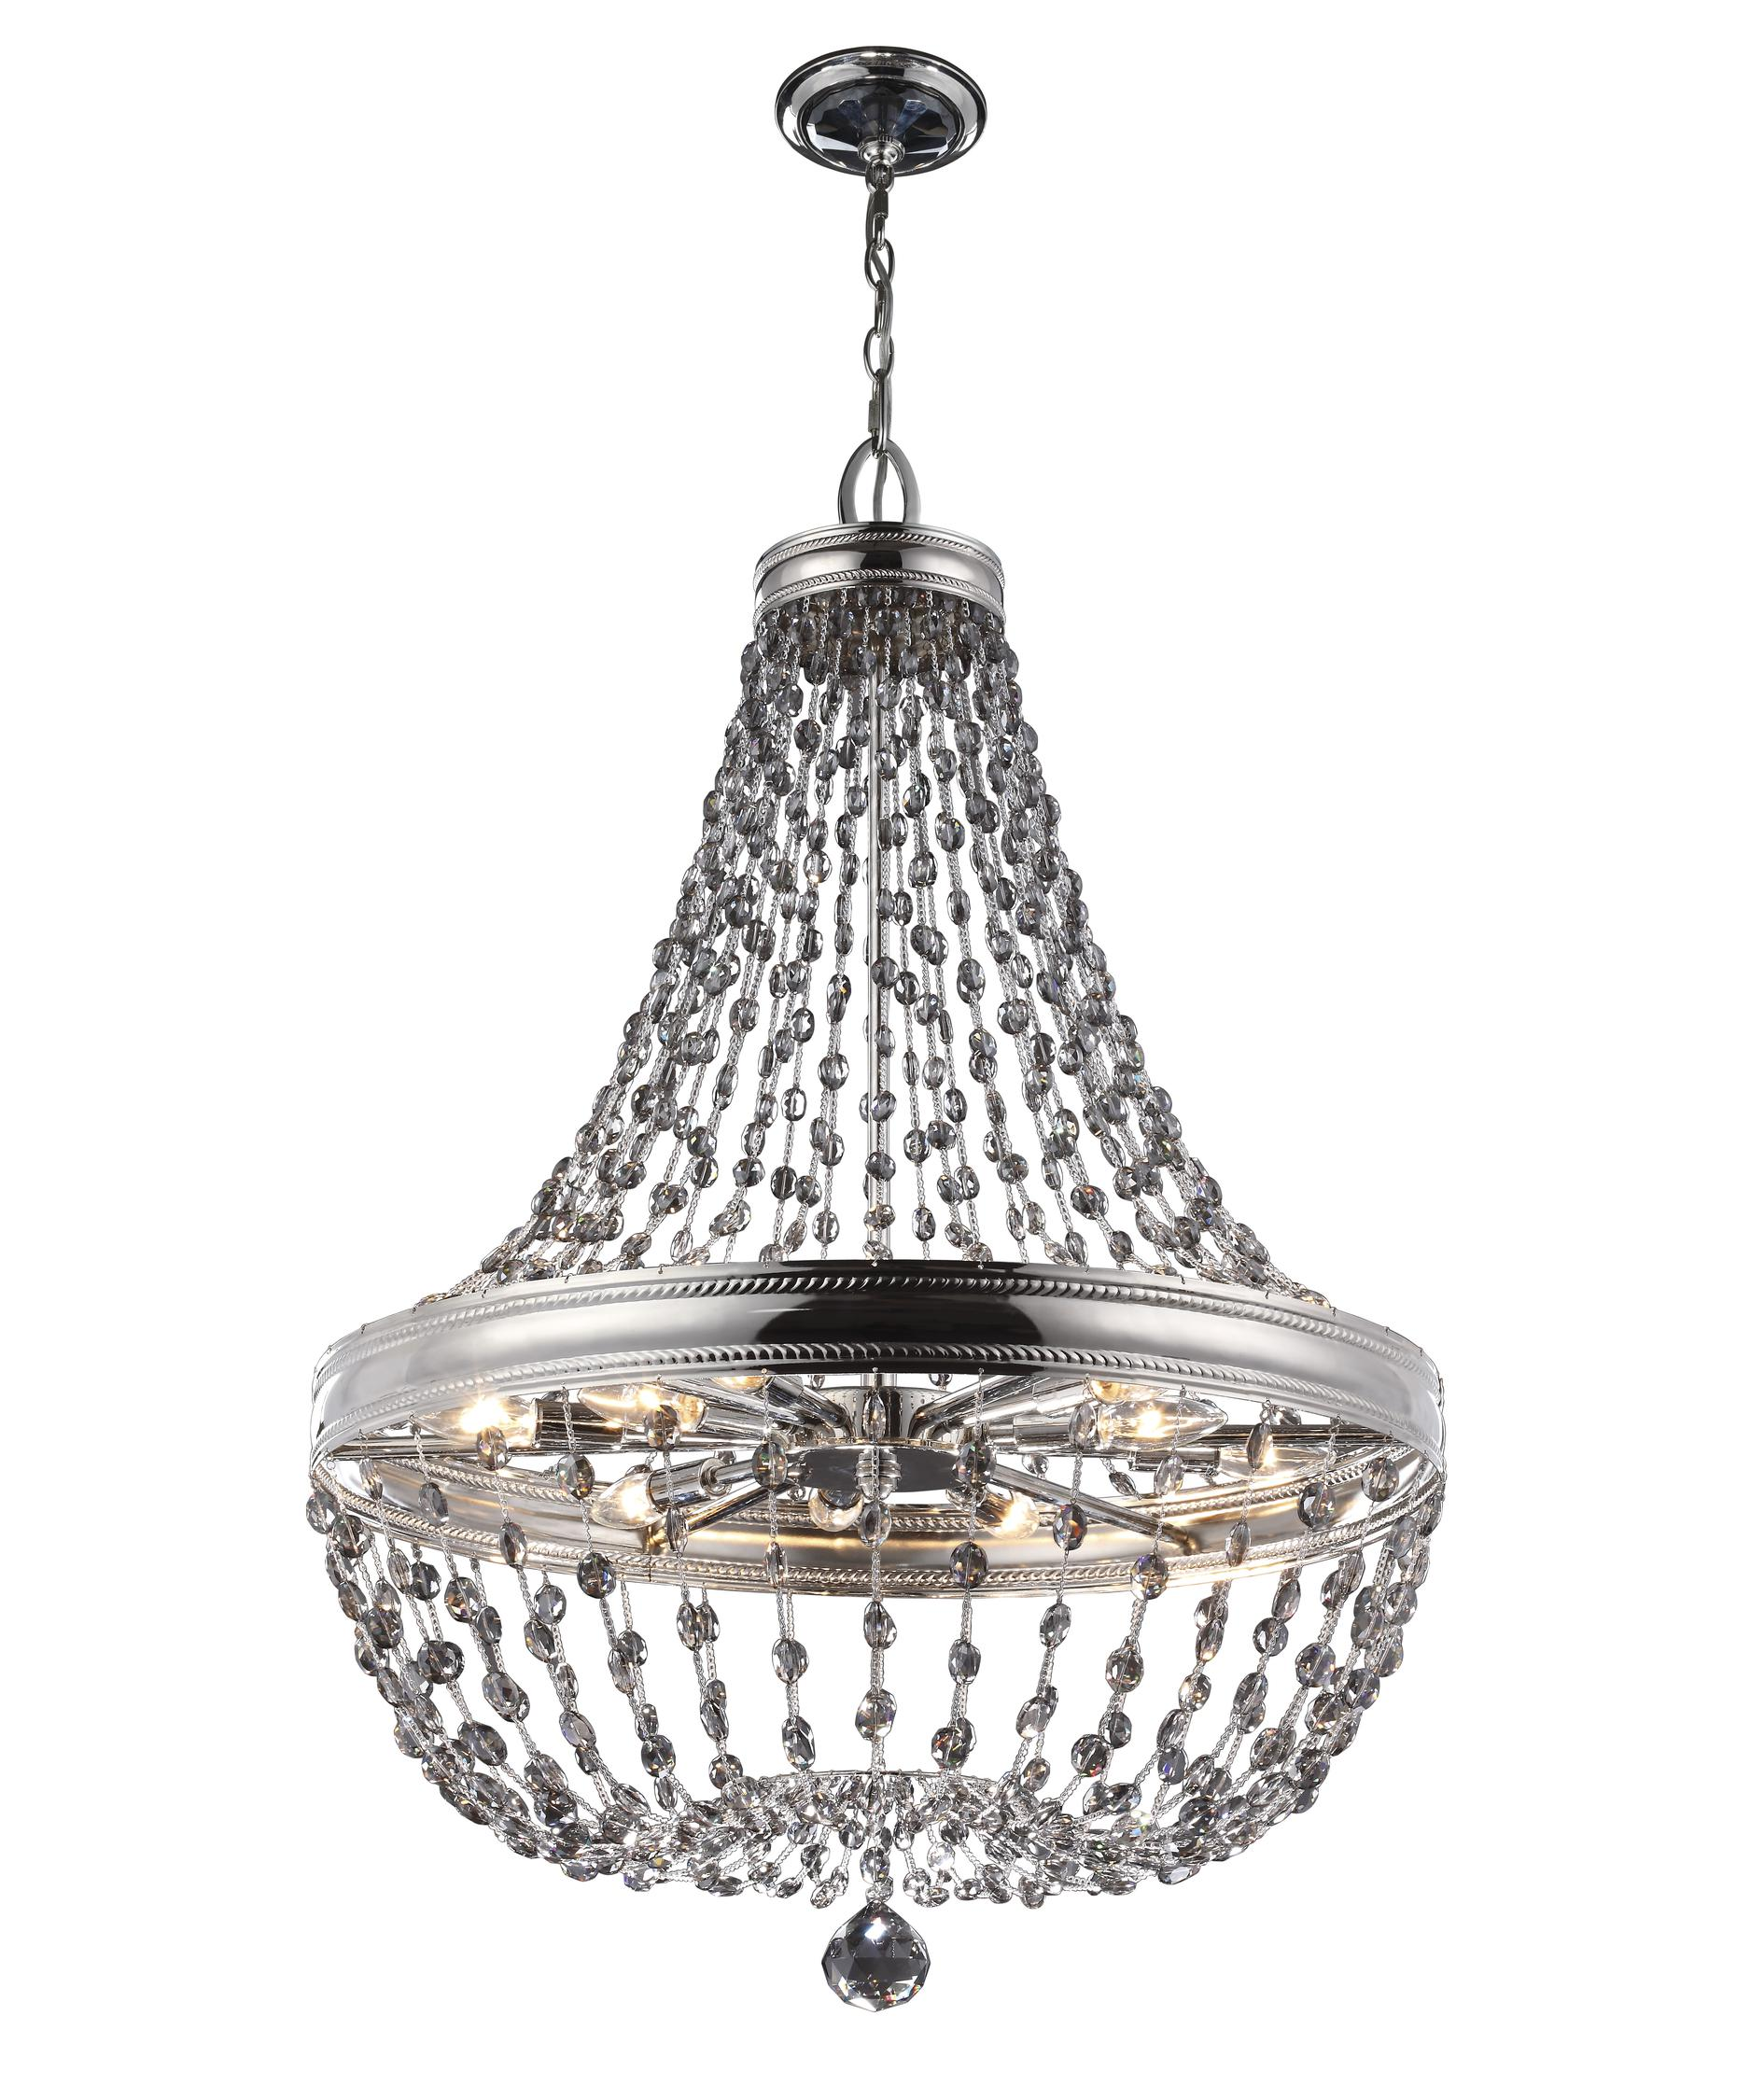 Murray Feiss Malia 36 Inch Wide 12 Light Chandelier – Murray Feiss Chandeliers